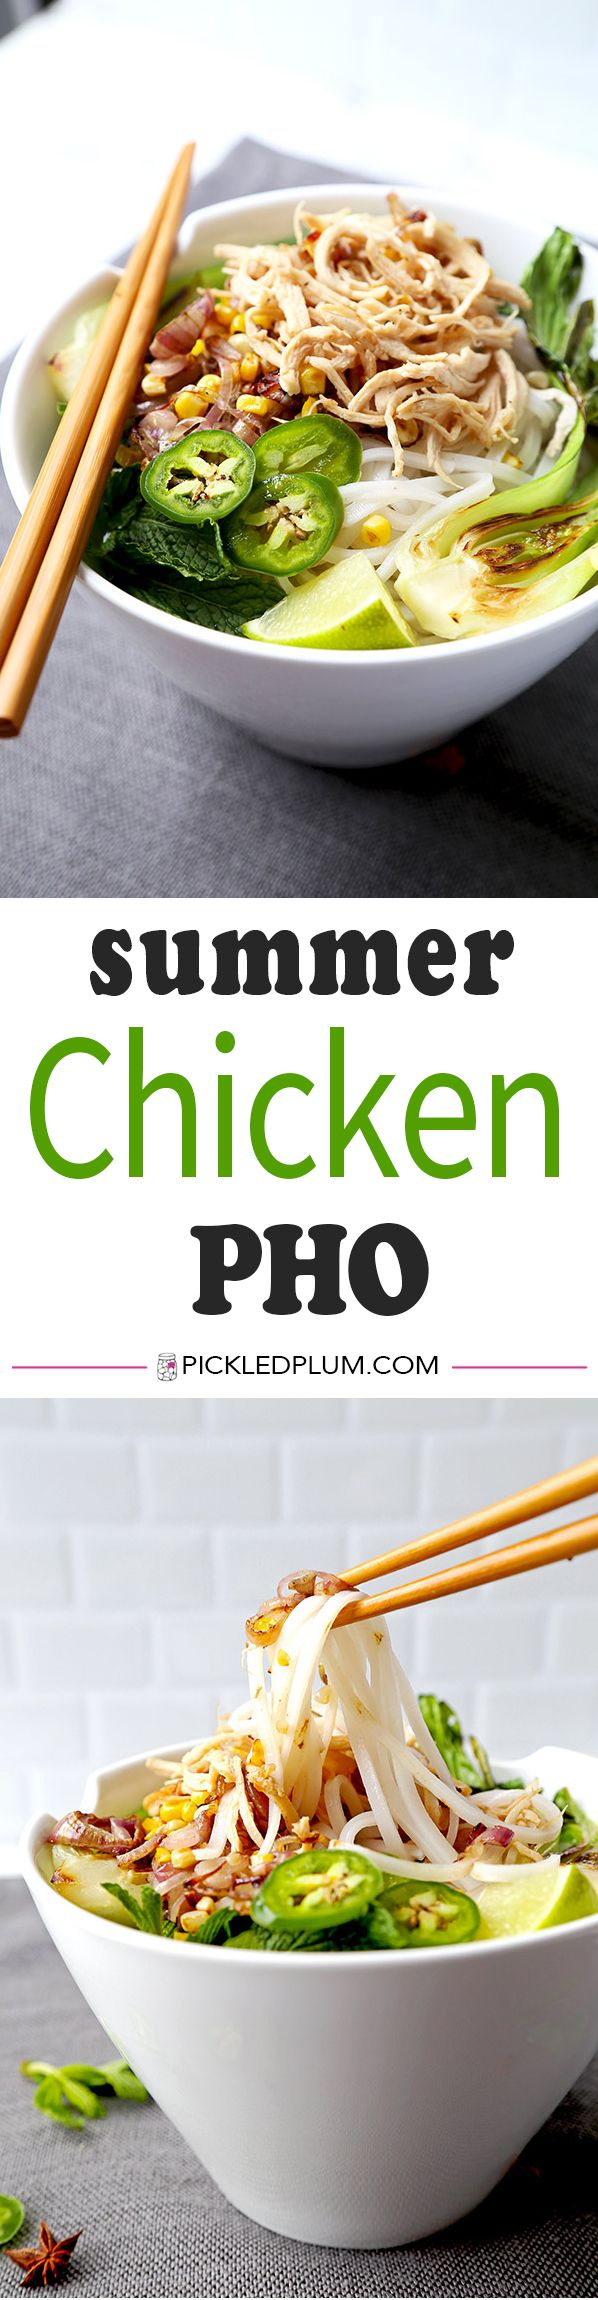 Summer Chicken Pho - topped with corn, baby bok choy and caramelized shallots, this easy pho recipe is light and makes the perfect summer meal! Vietnamese pho recipe, chicken noodle soup recipe, asian noodle soup recipe | pickledplum.com